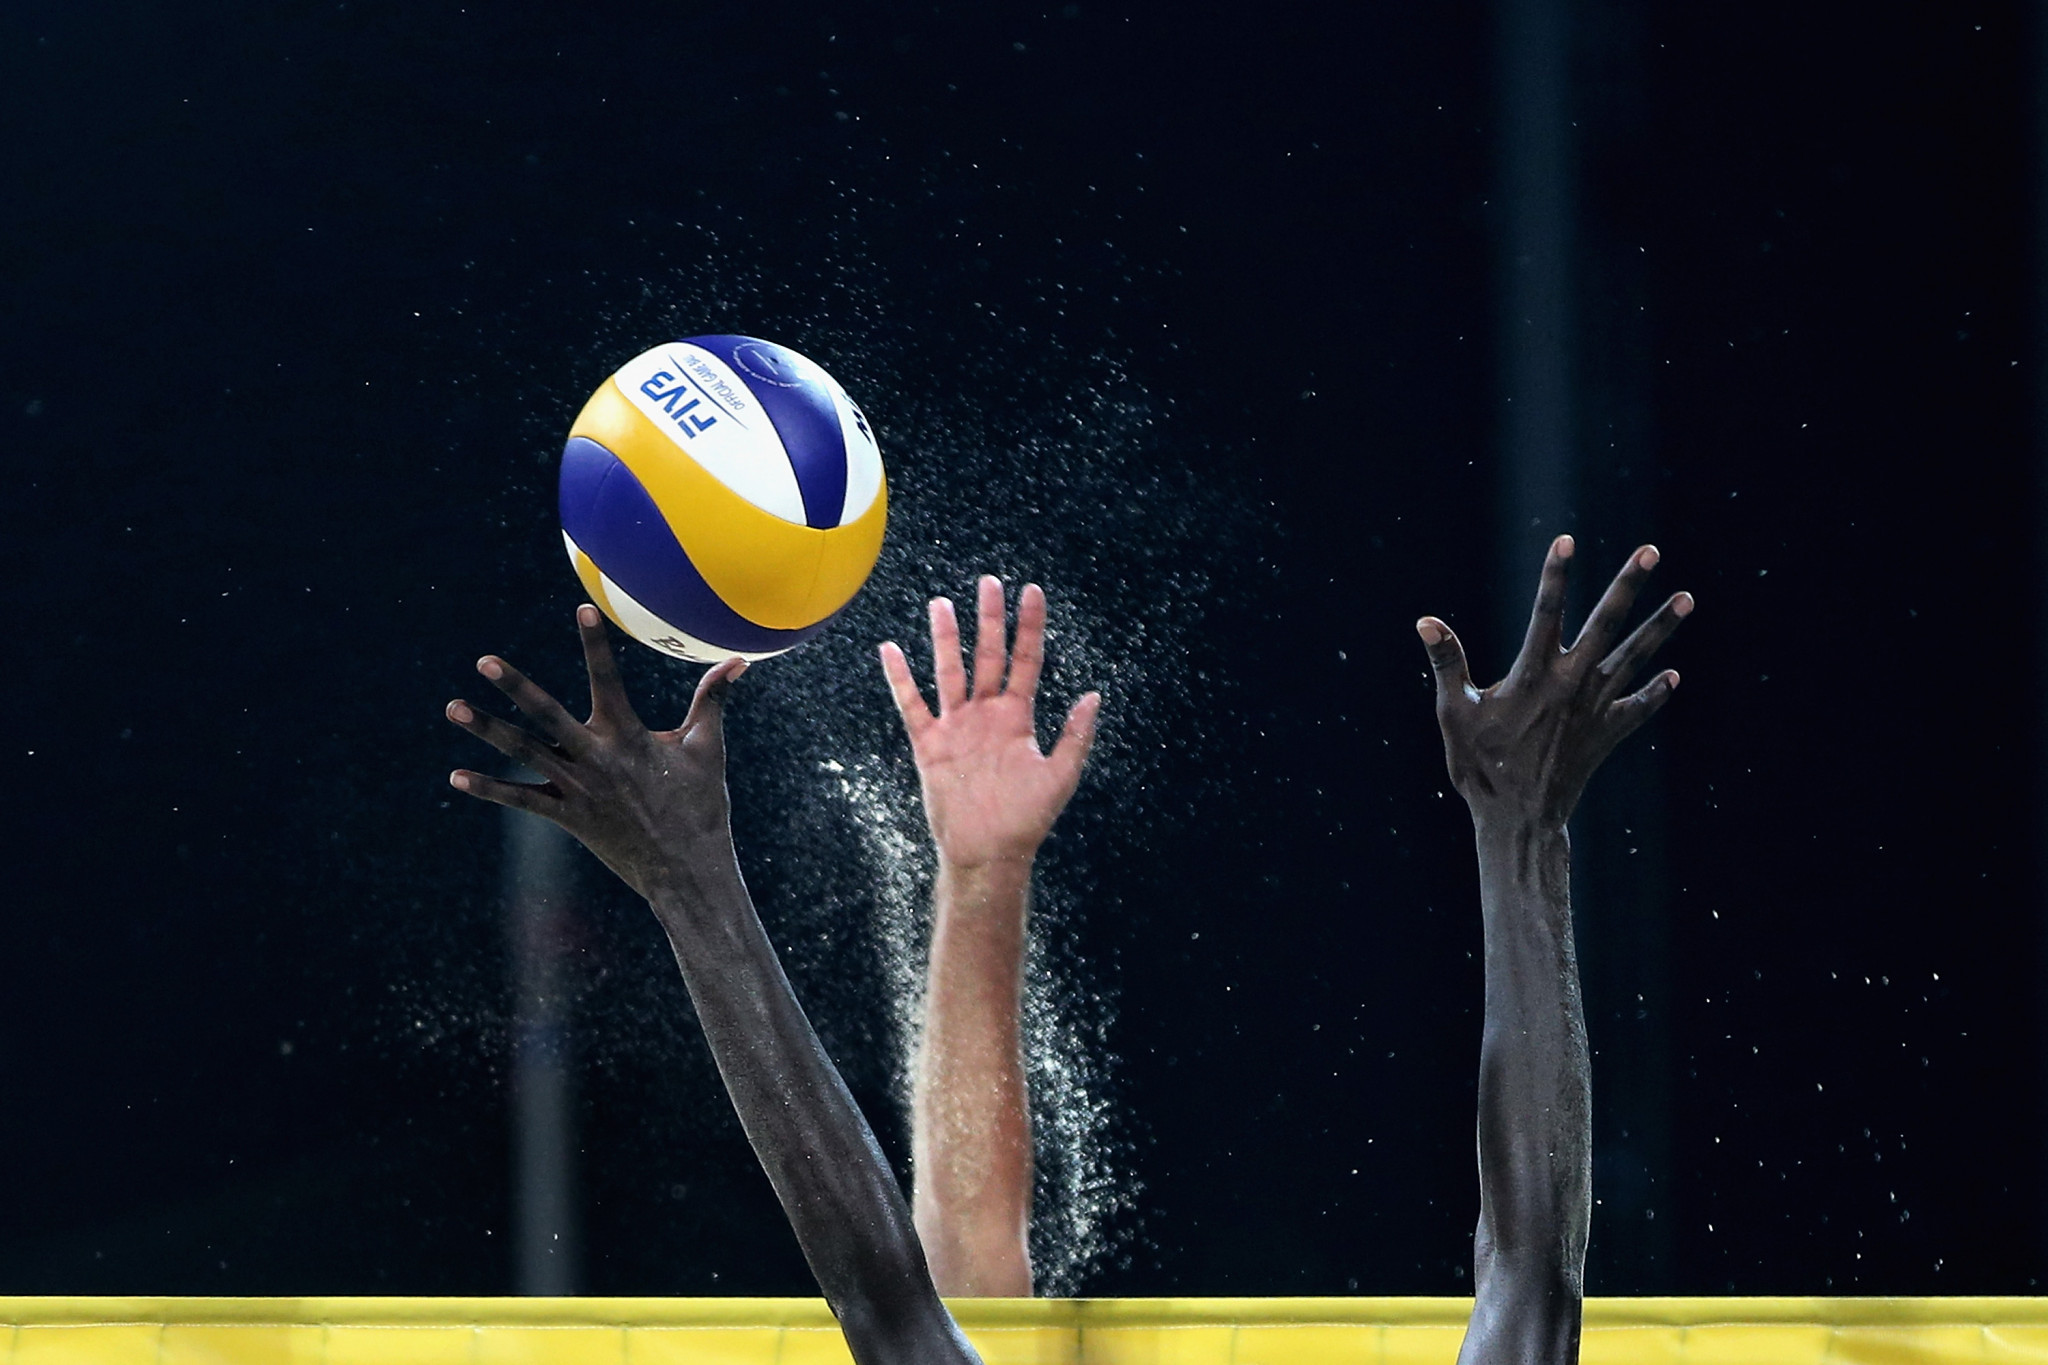 Rwanda disqualified from Africa Volleyball Championship after fielding ineligible players